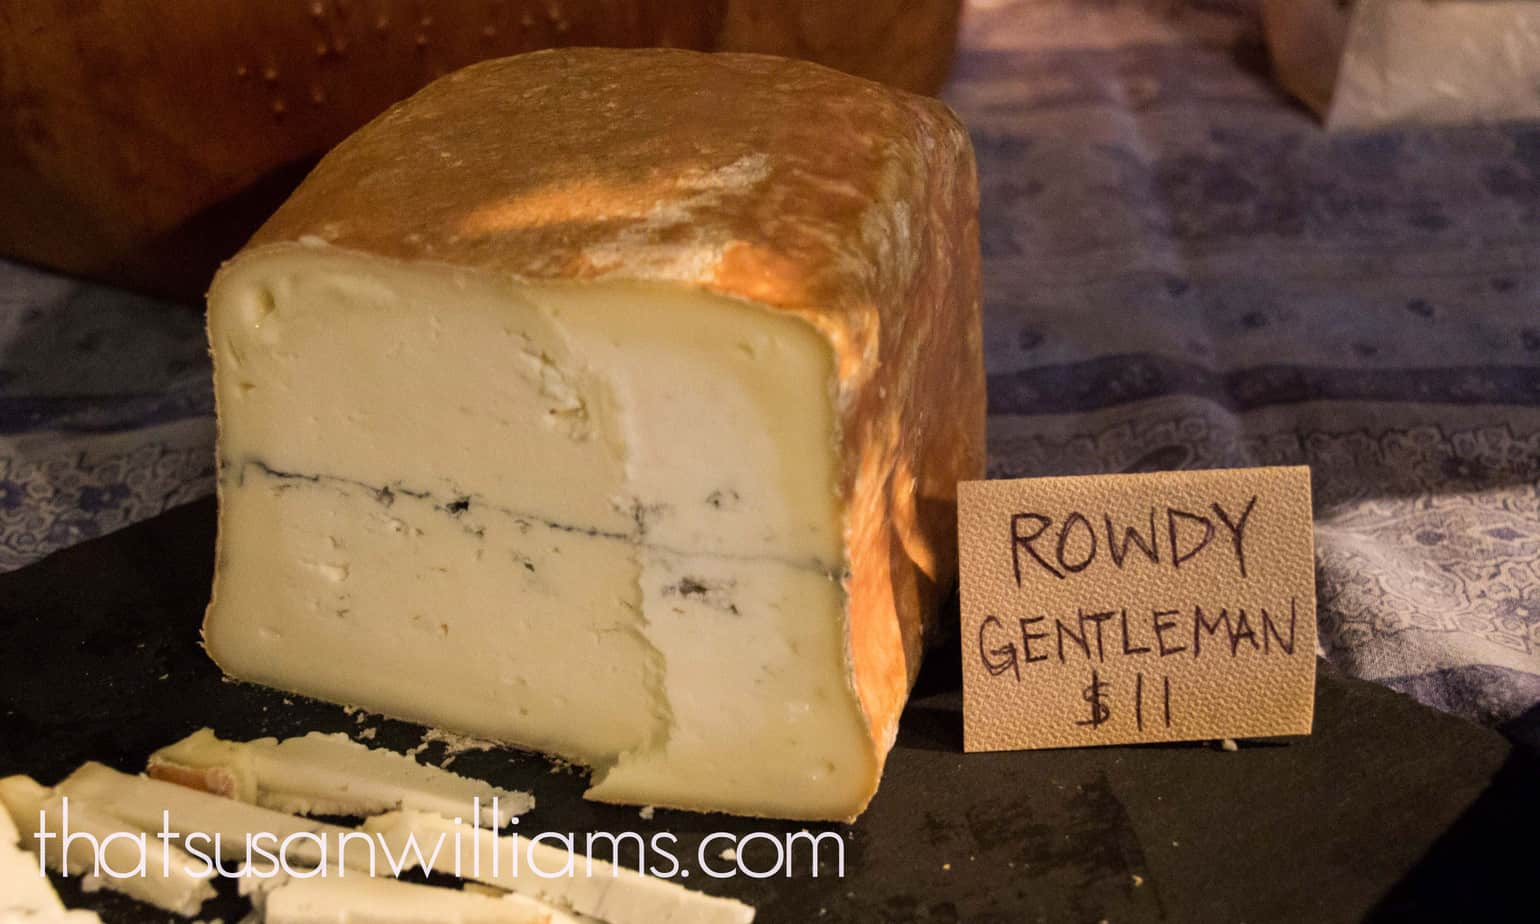 Rowdy Gentleman, a chèvre from Prodigal Farm